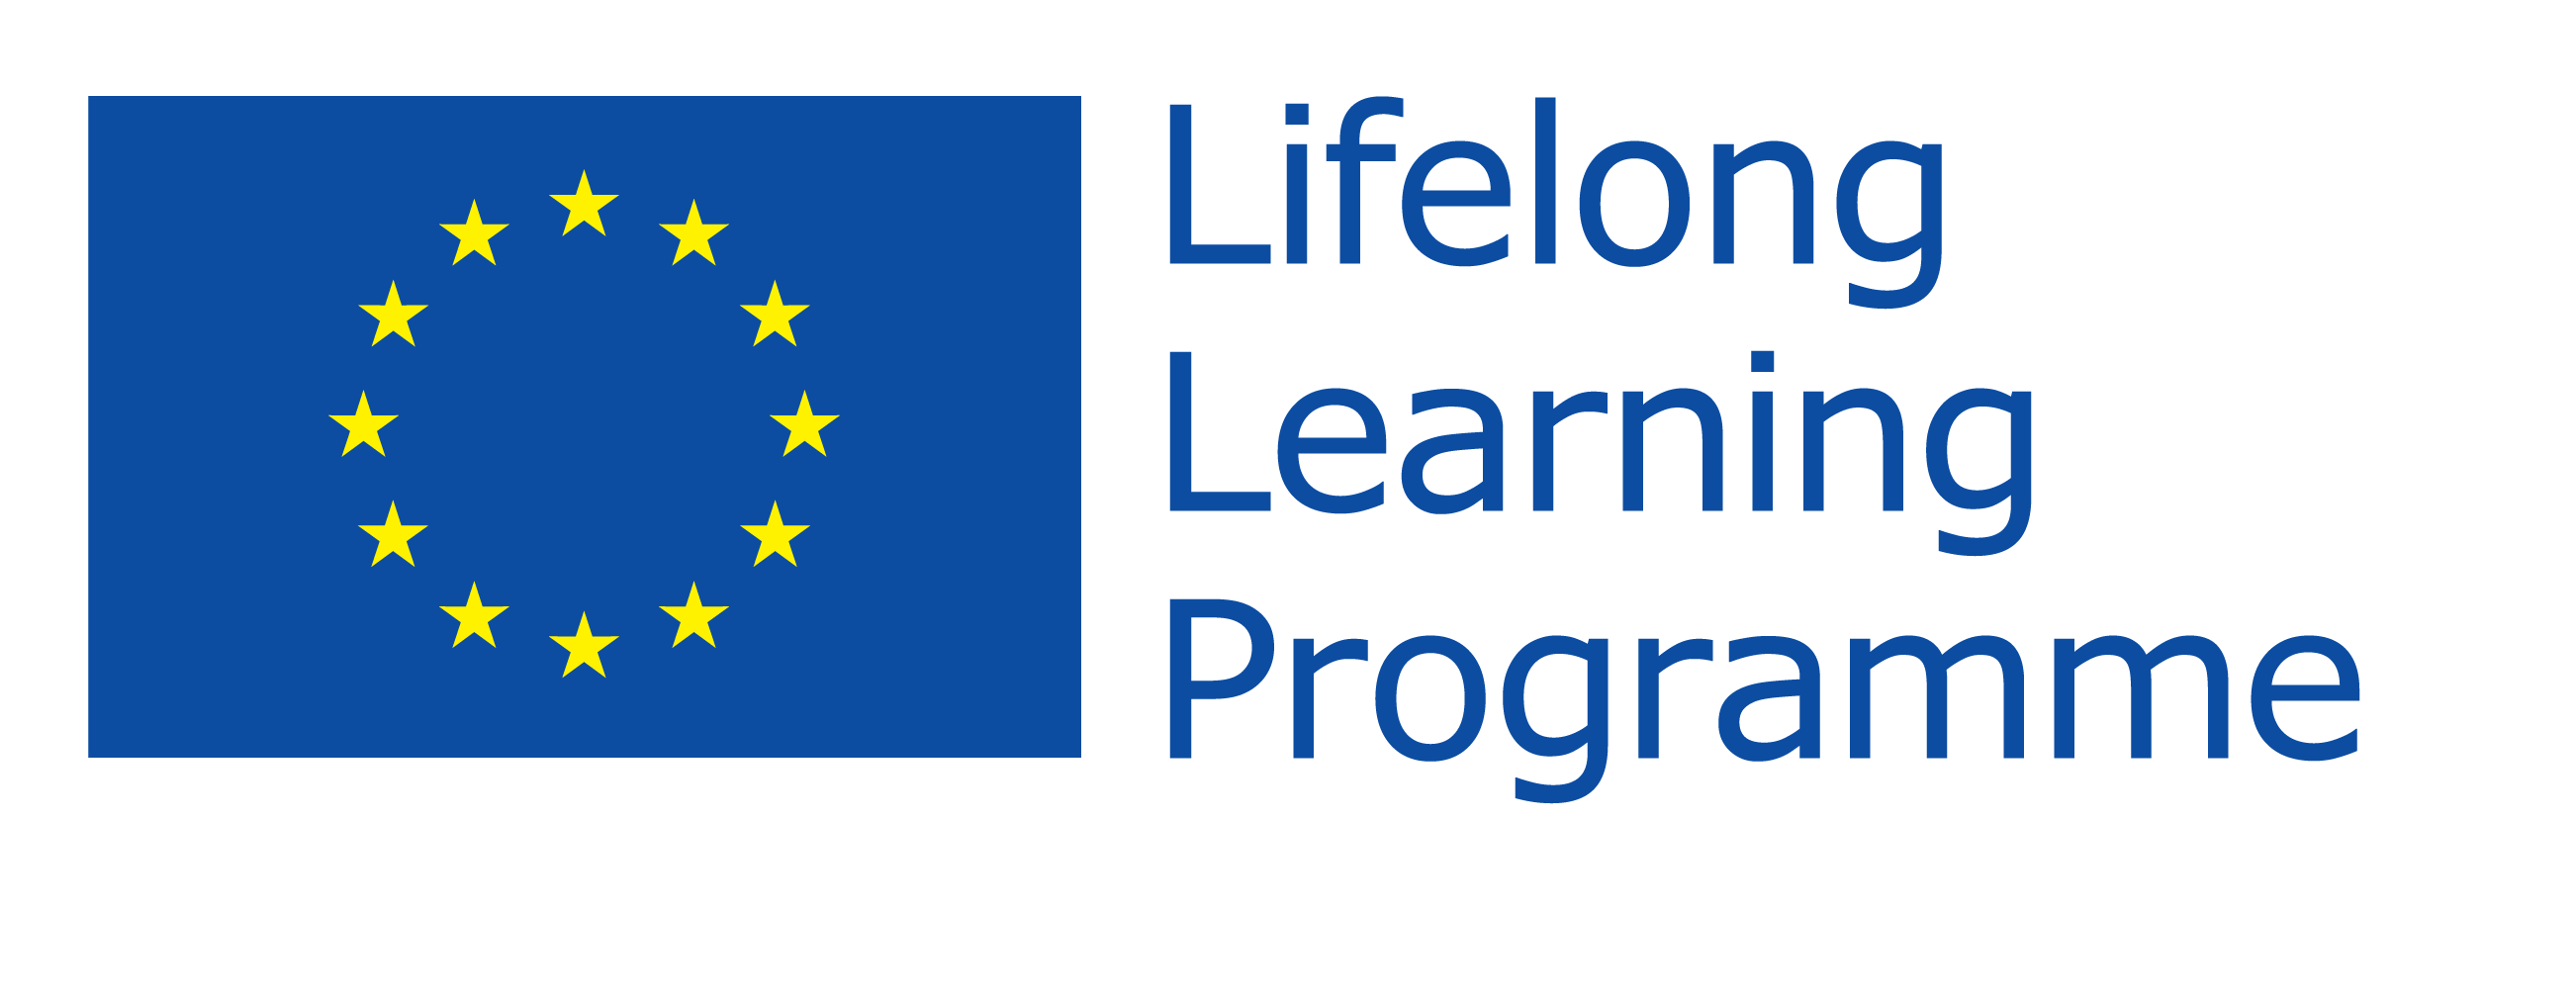 EU Lifelong Learning programme logo